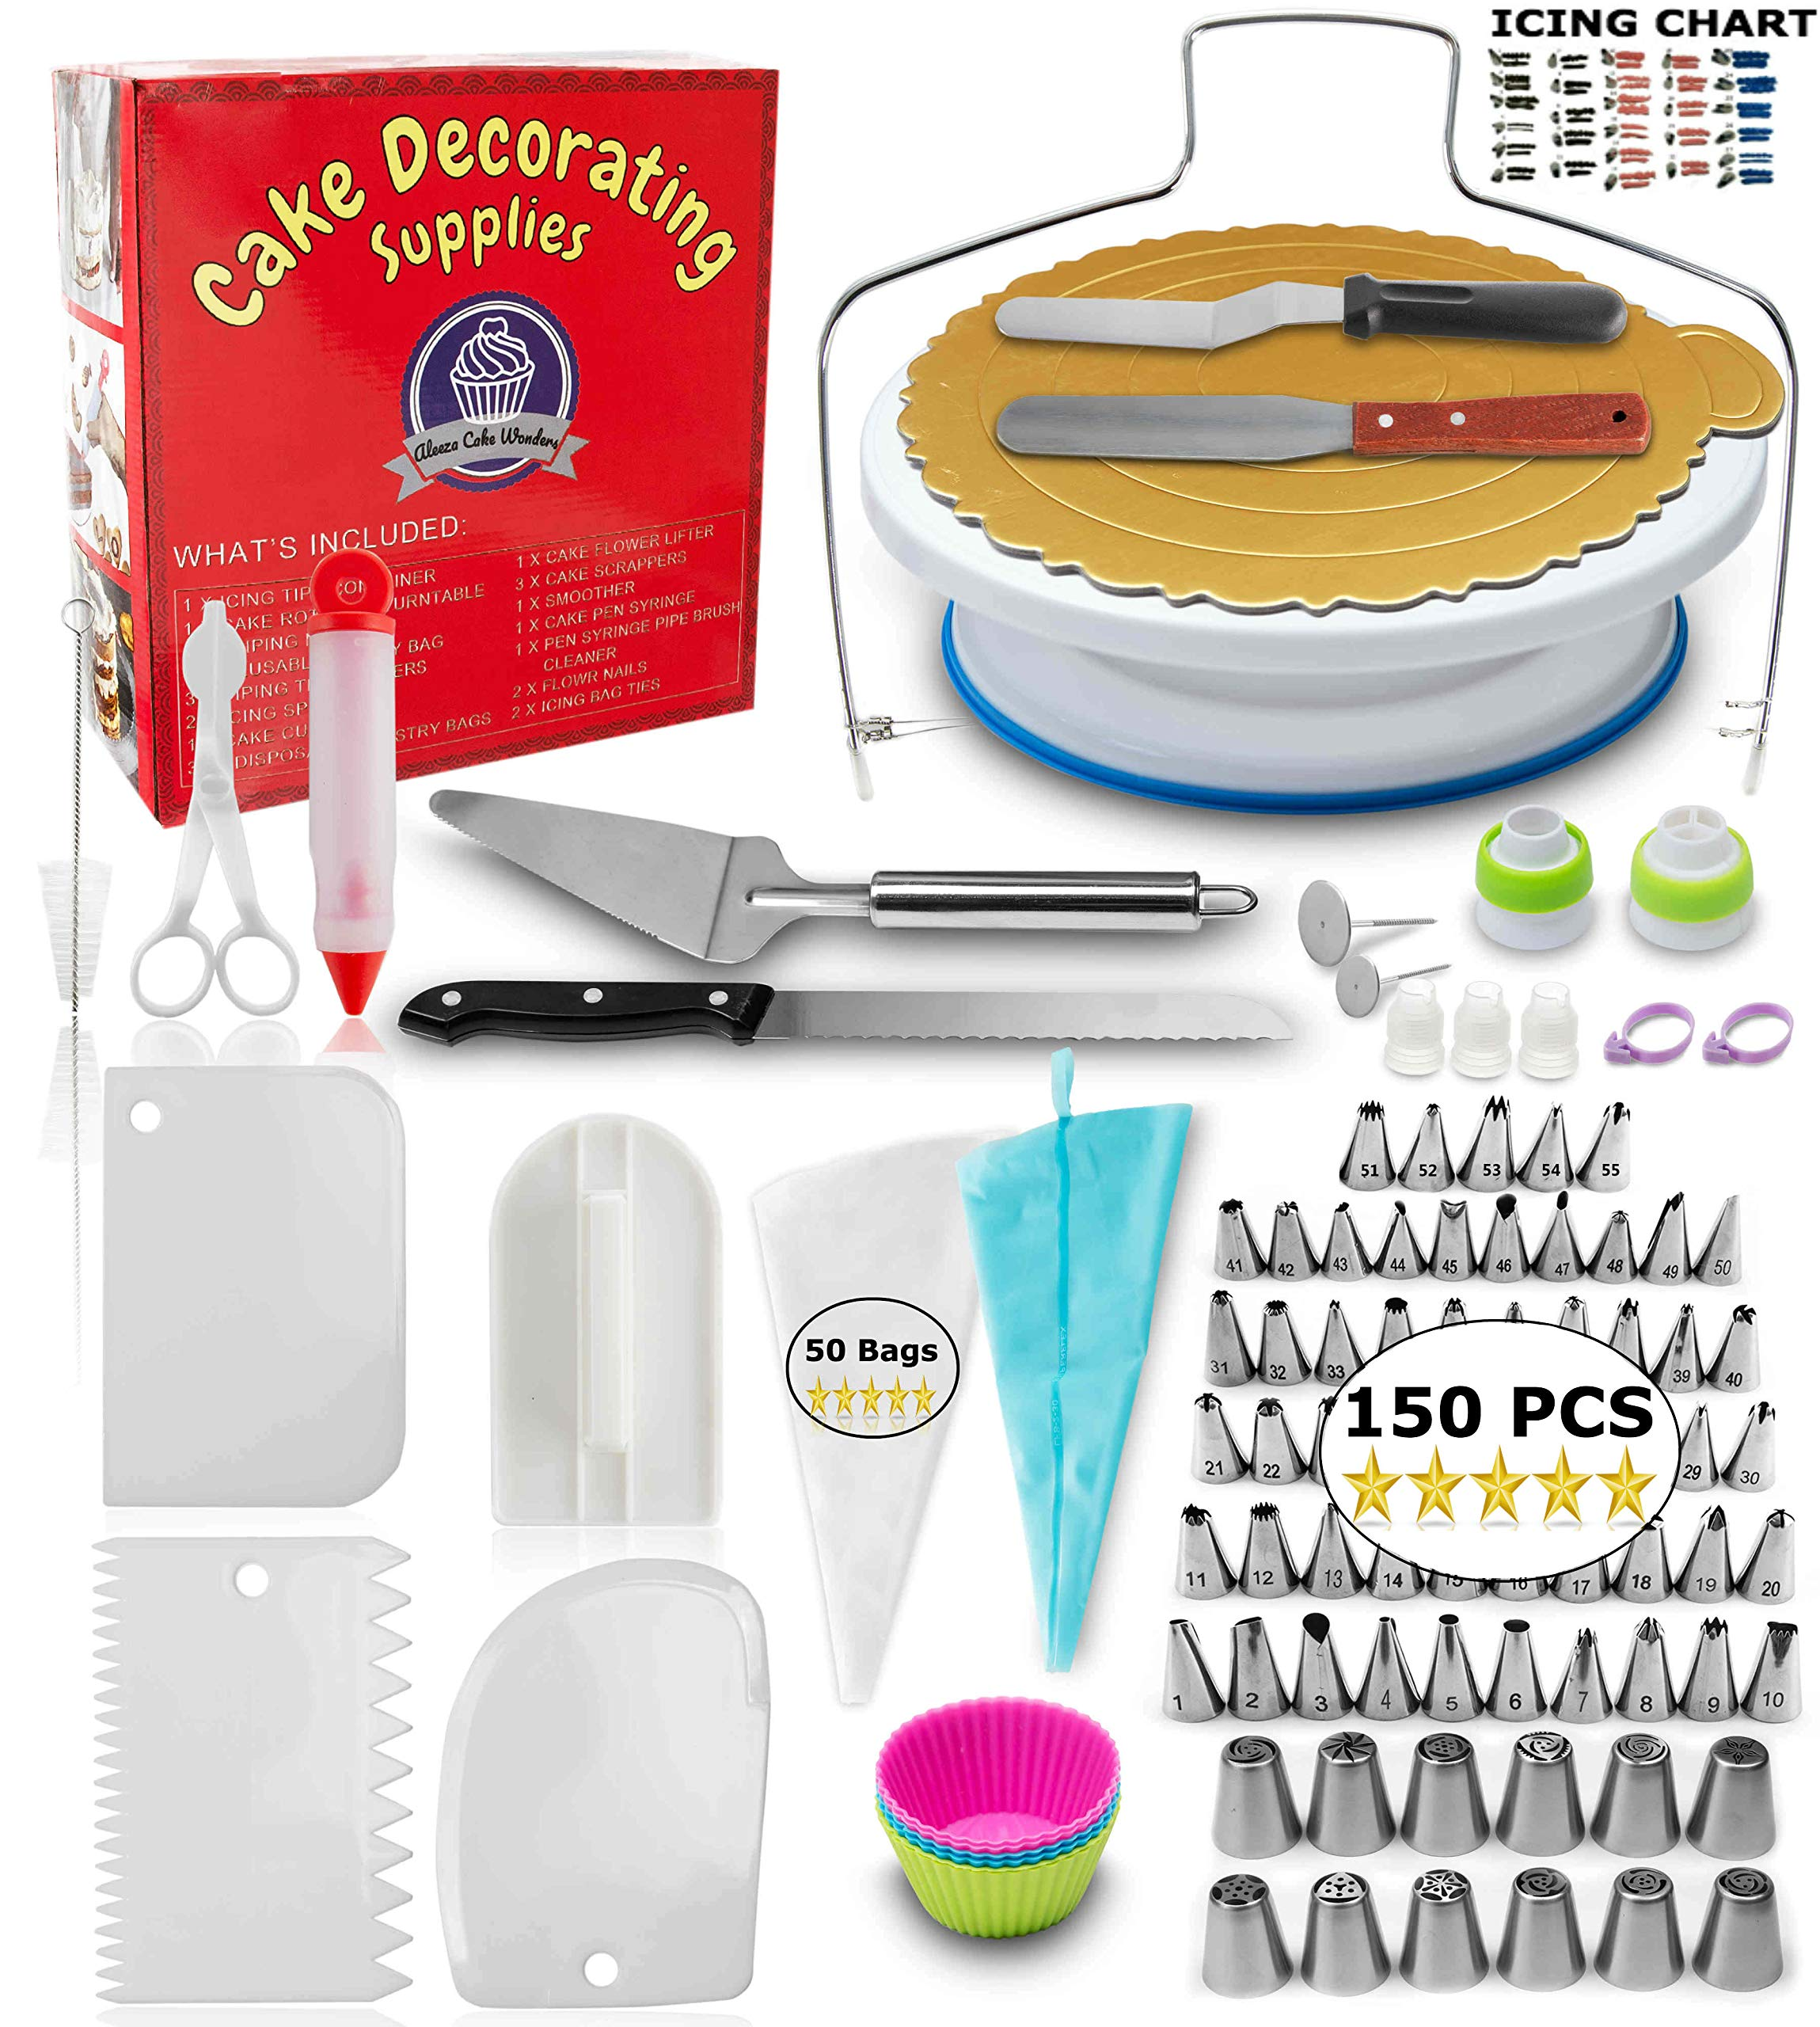 Cake Decorating Supplies - (150 PCS CAKE DECORATING KIT) With Numbered Icing Tips, Tips Chart, Cake Rotating Turntable and More. Create AMAZING Cakes w/this cake set! by Aleeza Cake Wonders (Image #1)